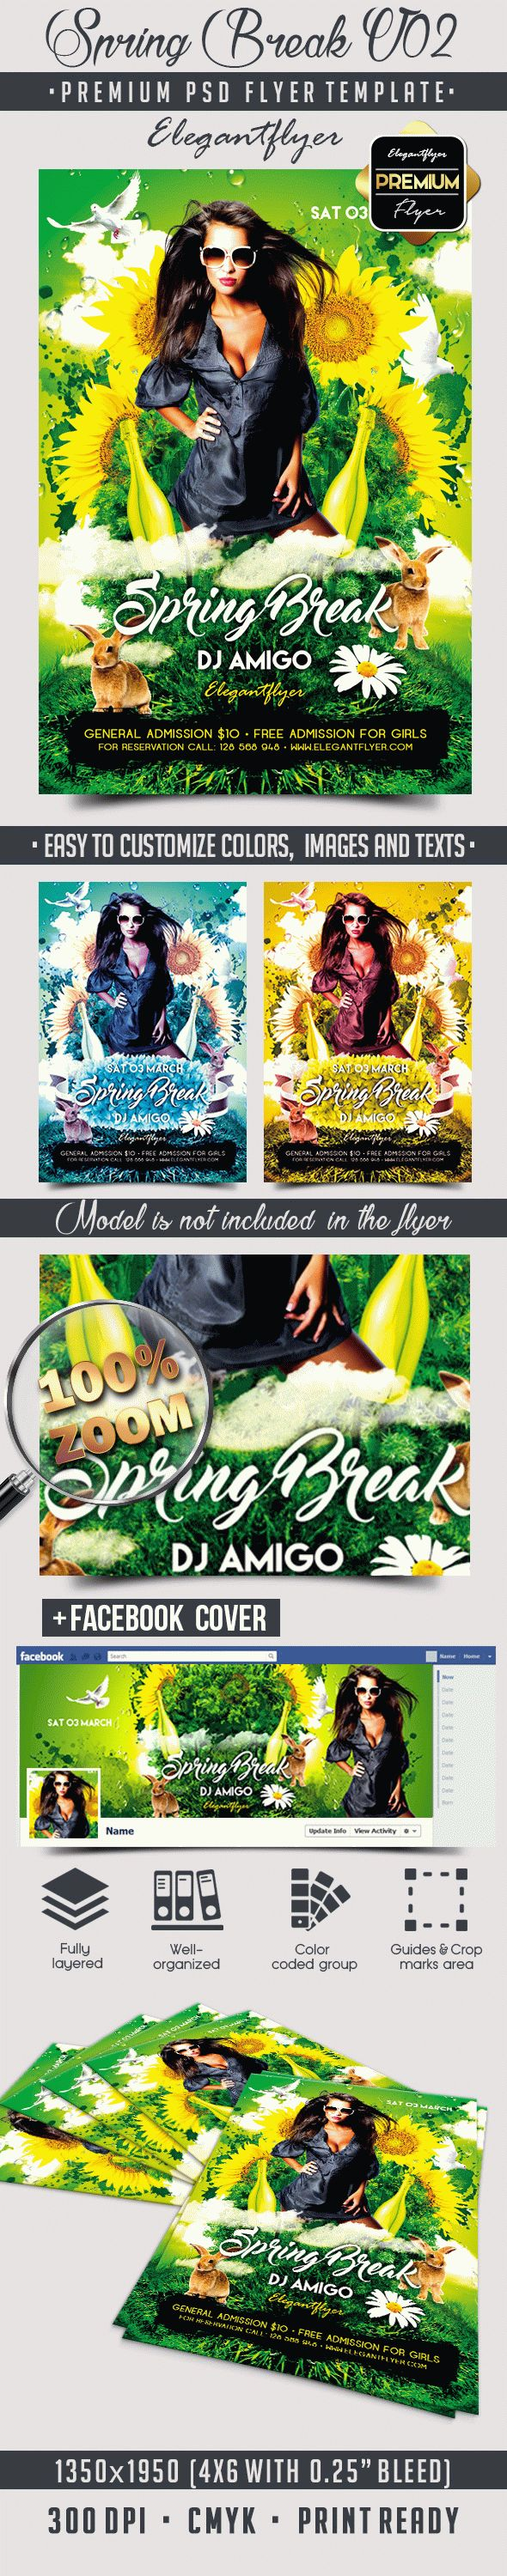 Spring Break V02 – Flyer PSD Template